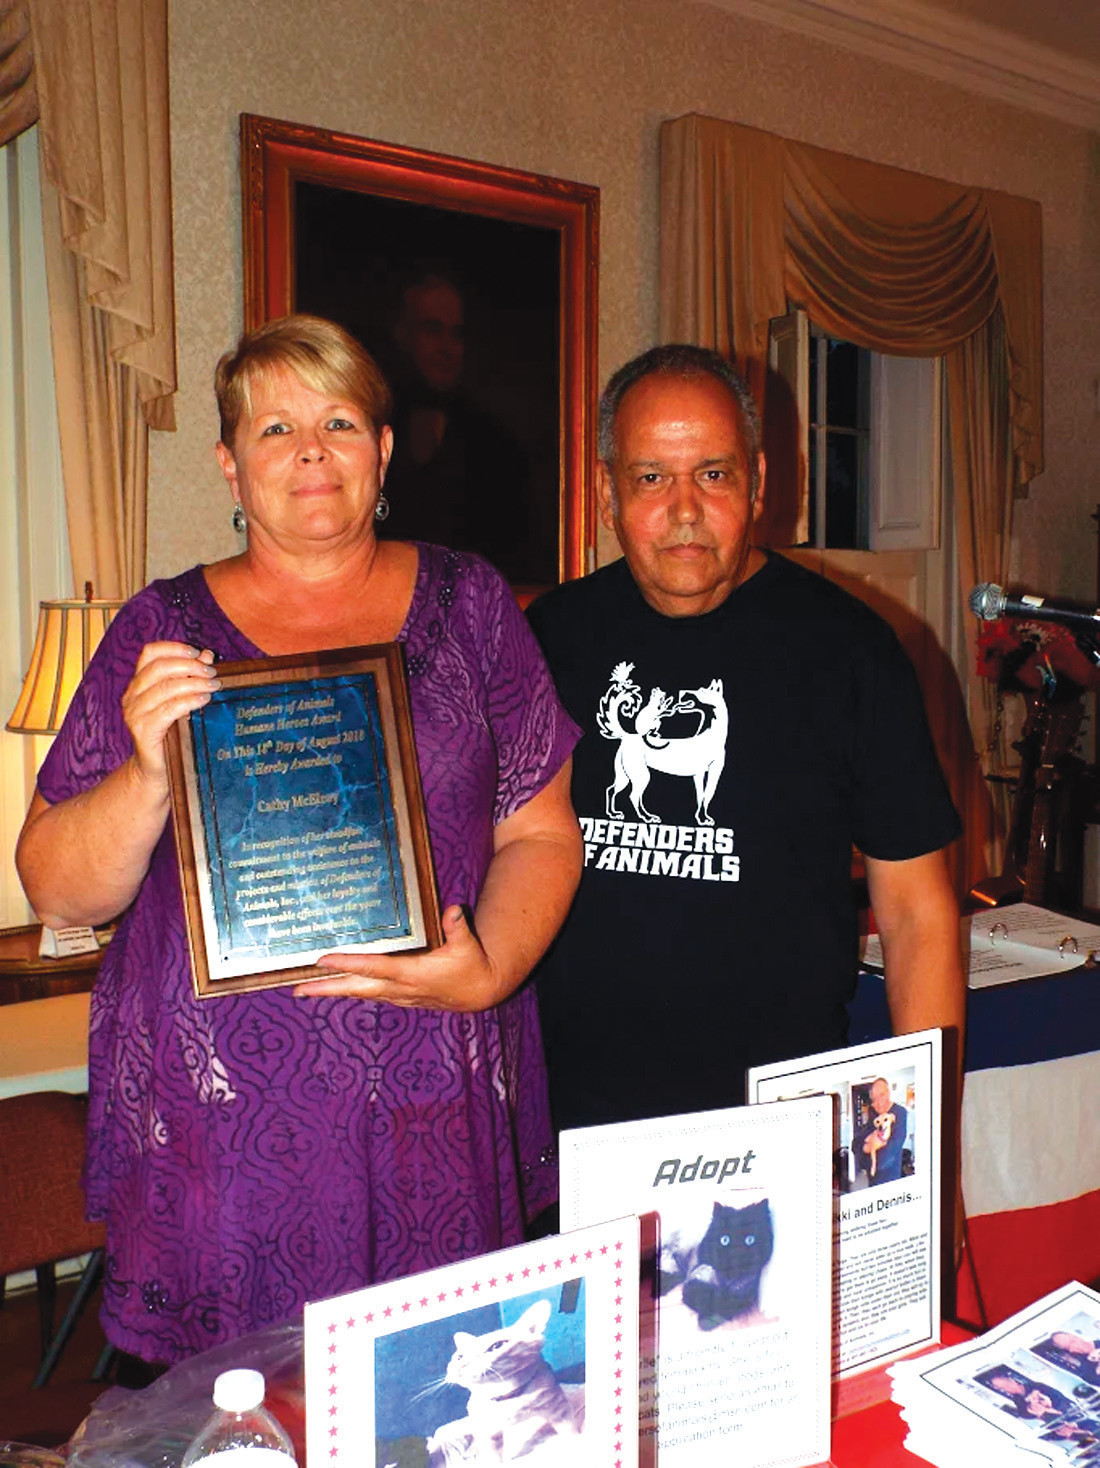 VOLUNTEER : Receiving a Humane Heroes Award from Defenders of Animals this past weekend was Cathy McElroy of Cranston who has provided countless hours of volunteer work. She is pictured with Dennis Tabella, Director of Defenders of Animals.